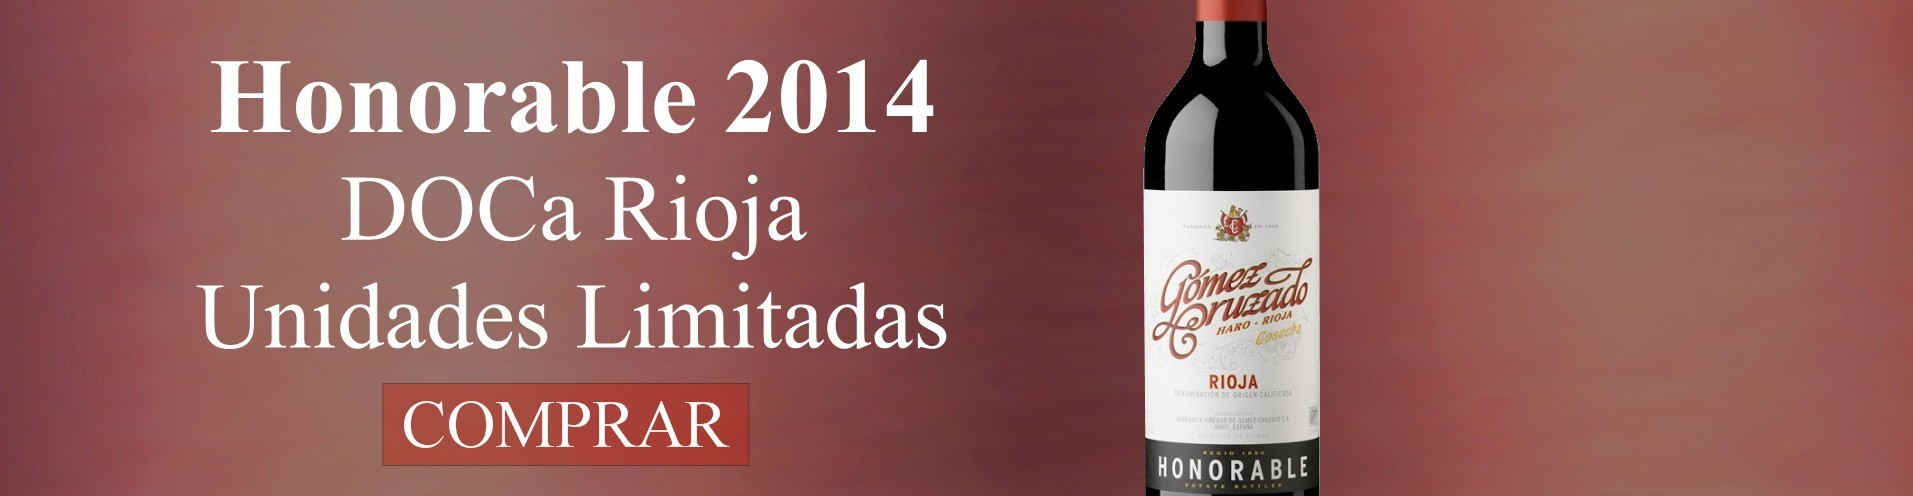 Honorable 2014 - Buy Wine DO Rioja